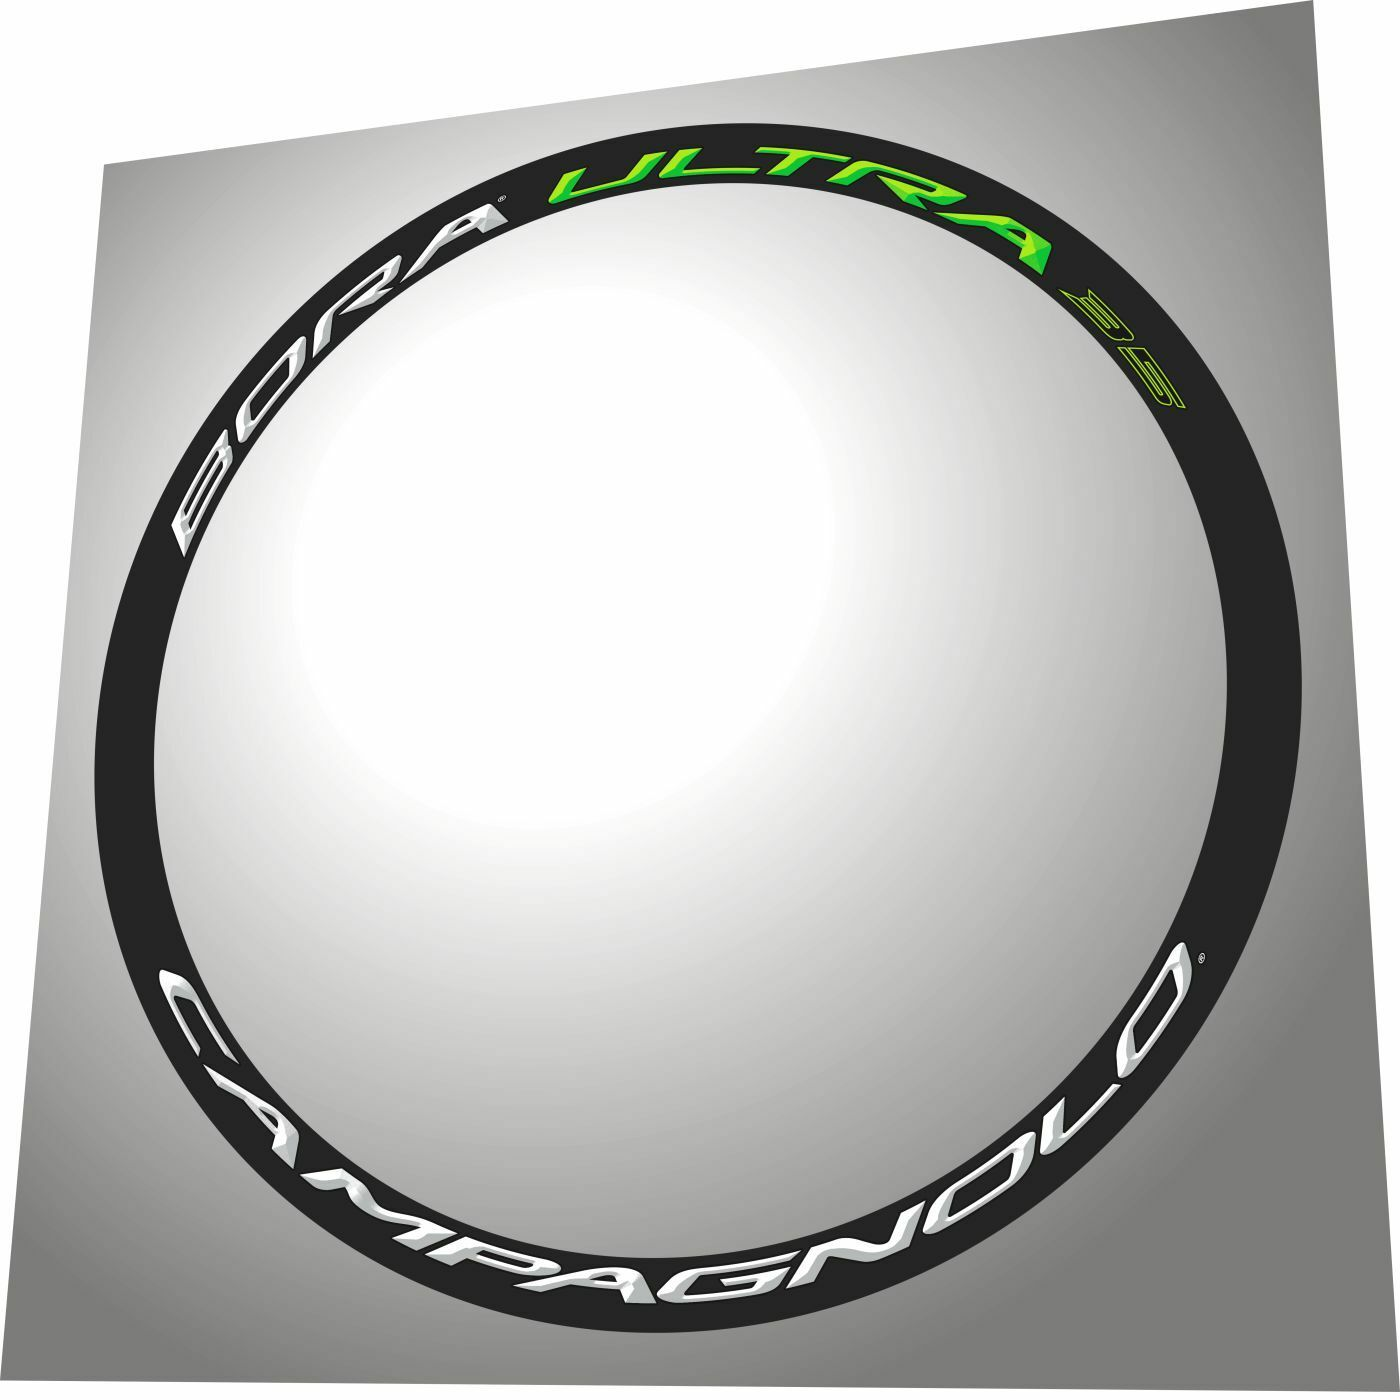 CAMPAGNOLO BORAULTRA 35 CANNONDALE GREEN REPLACEMENT RIM DECAL SET FOR 2 RIMS